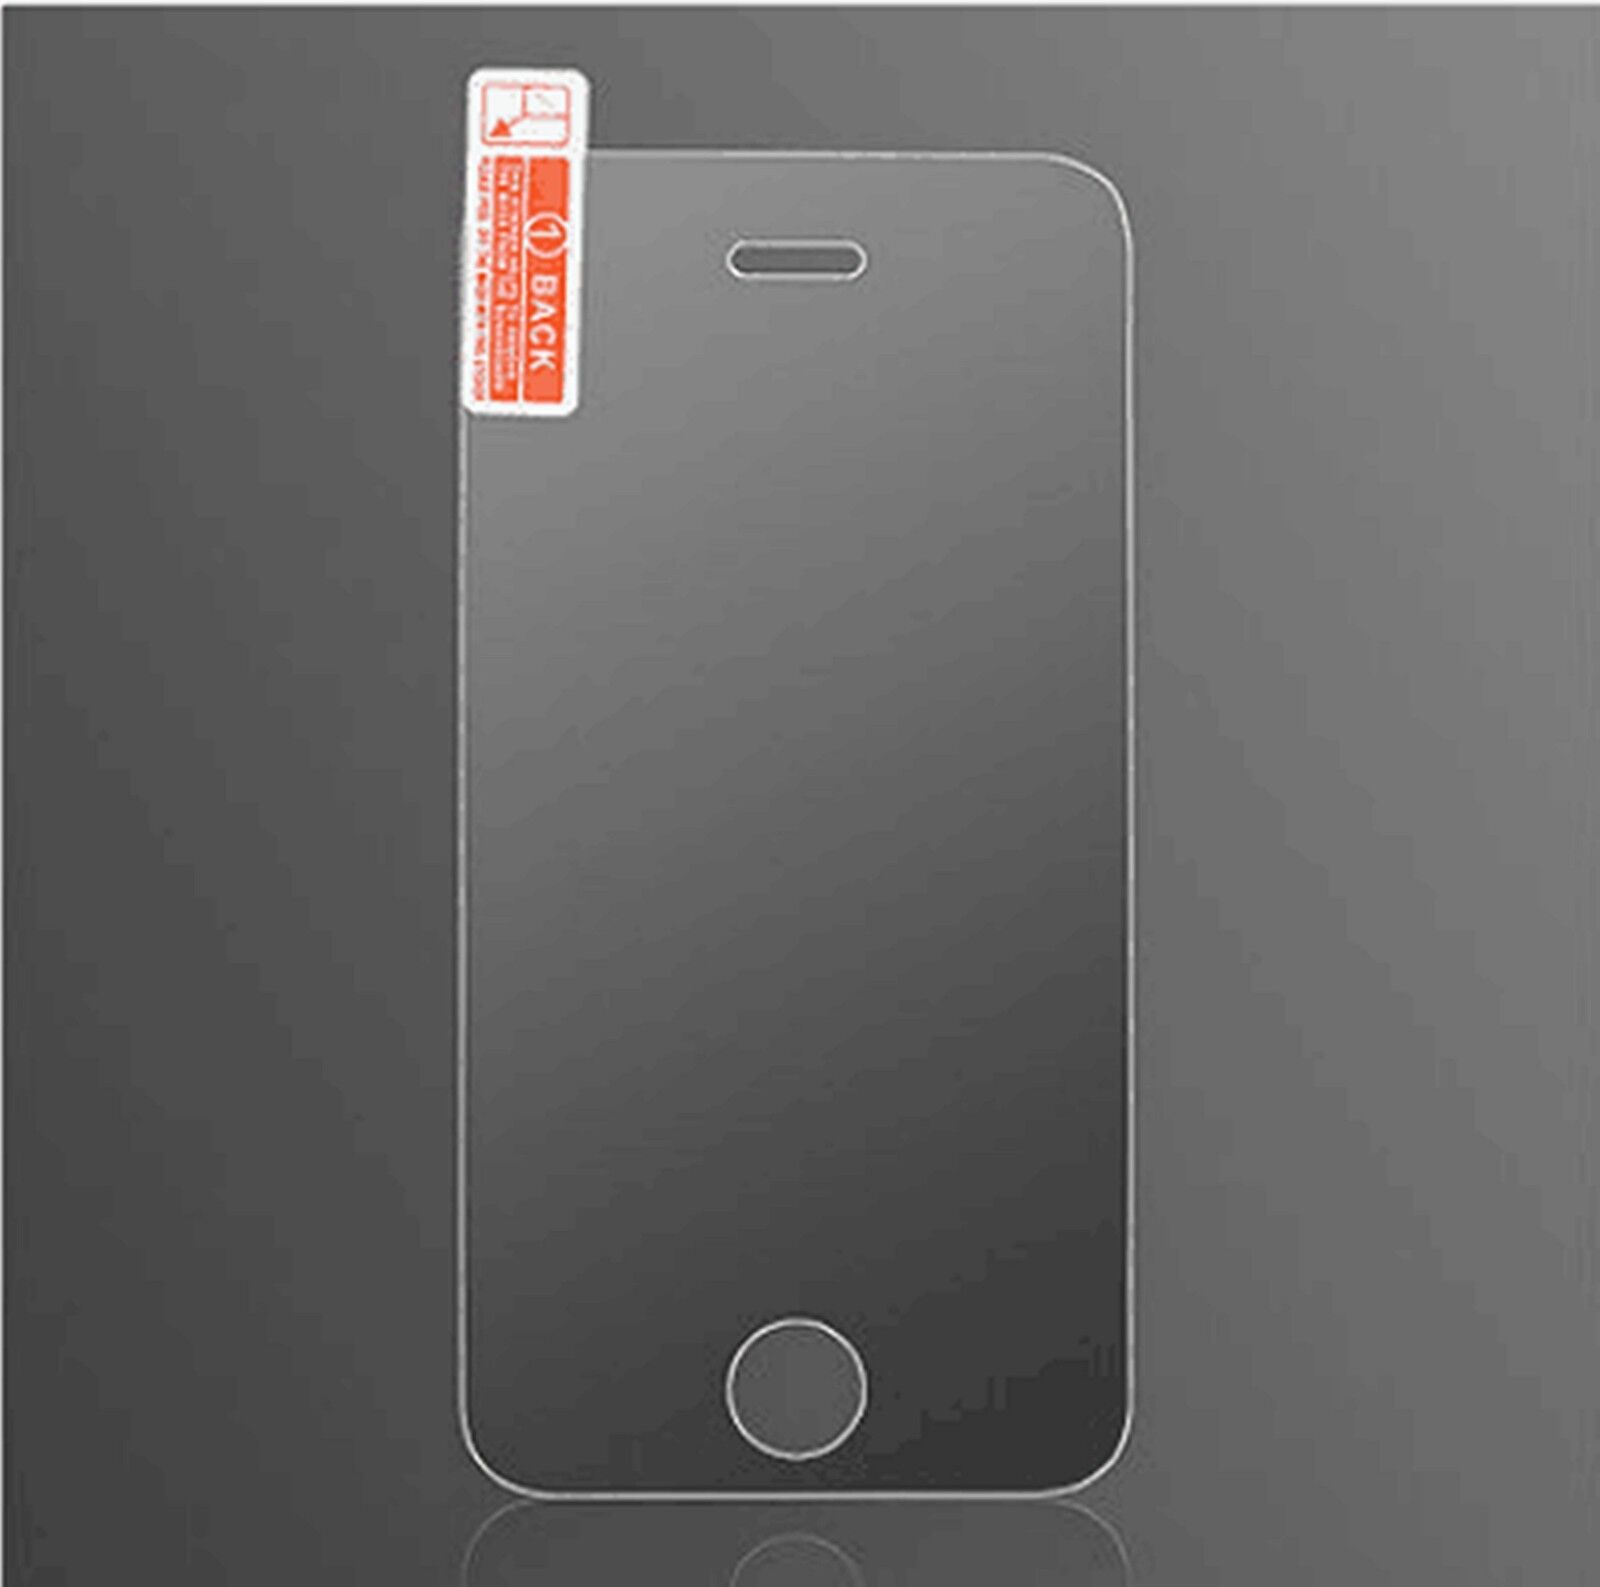 new iphone 6 screen for apple iphone 6 6s new tempered glass apple screen 8321